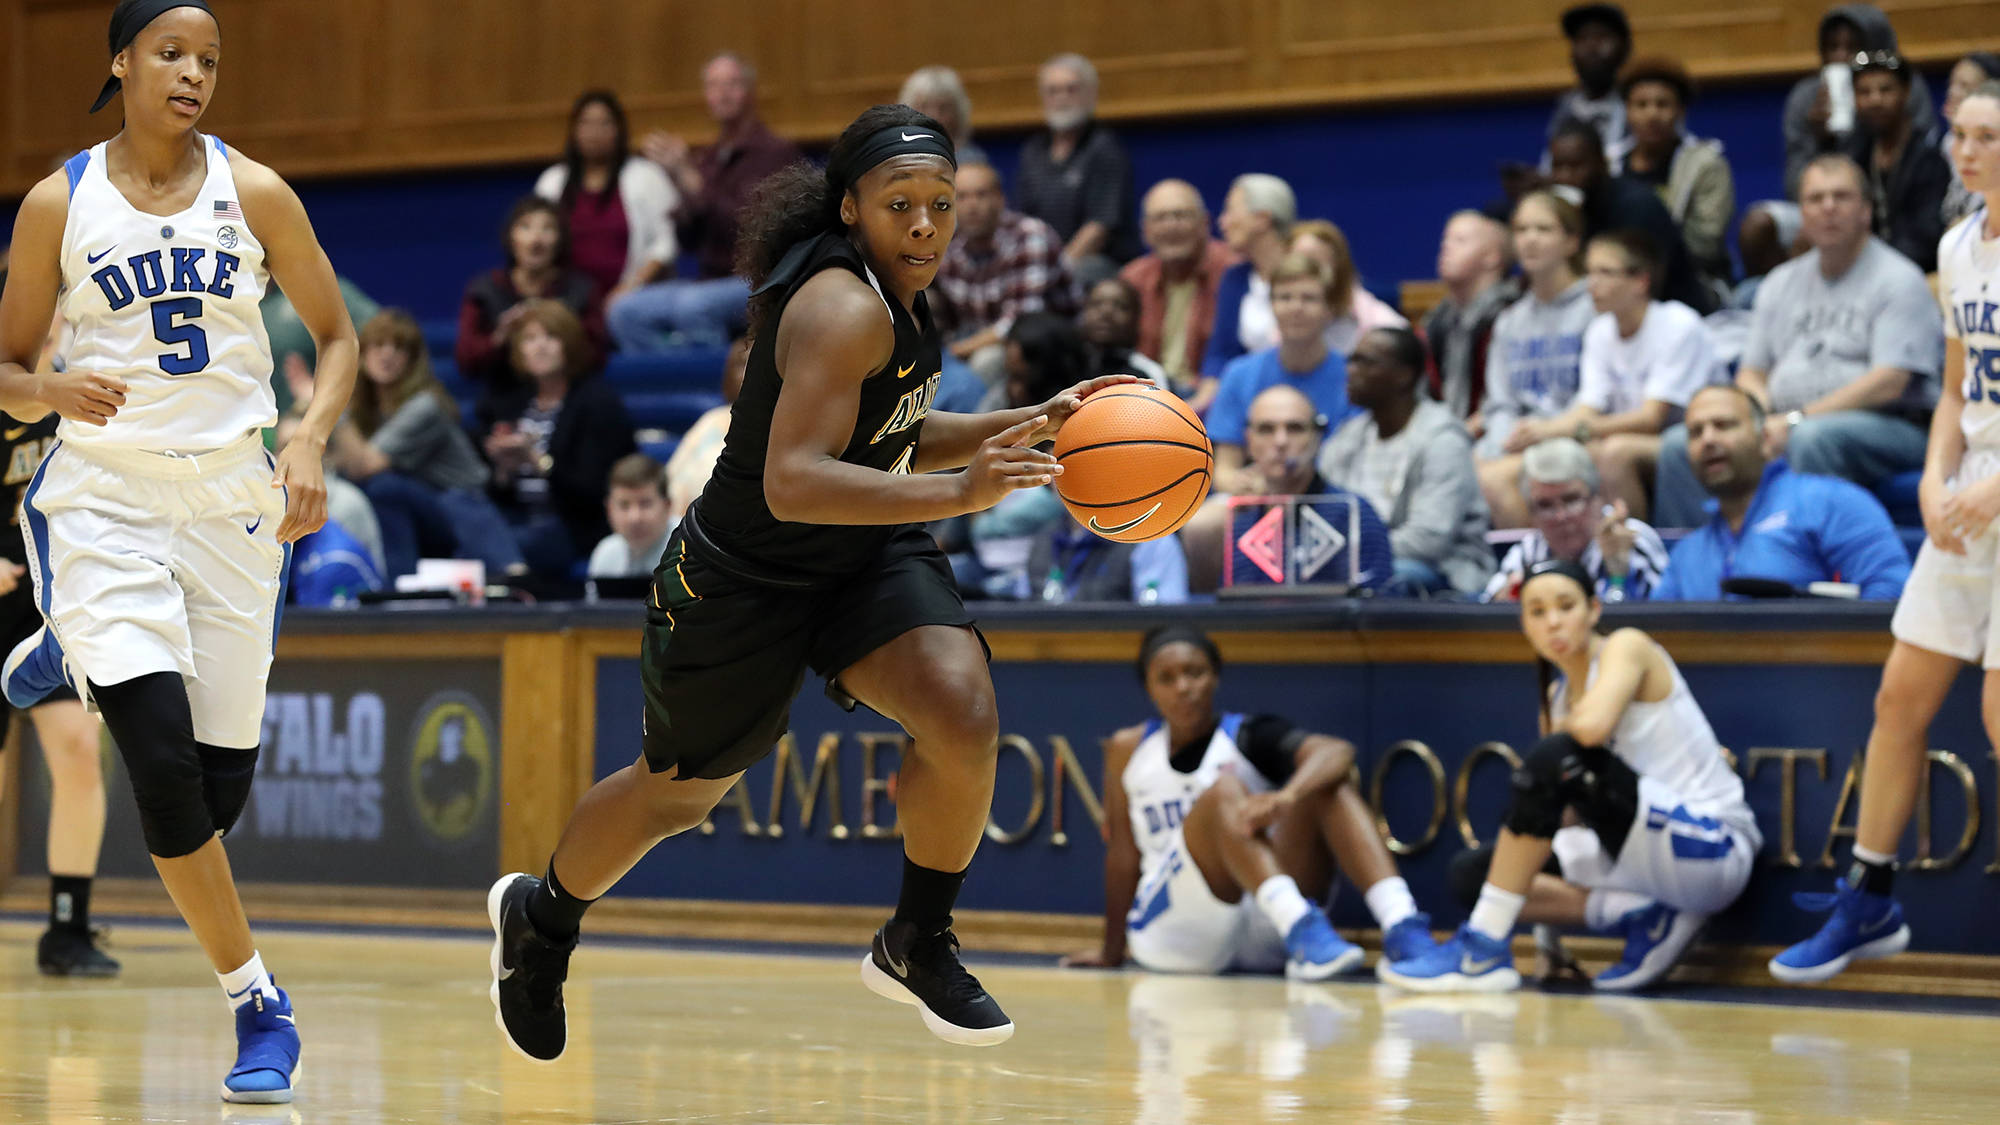 Wandersee's double-double highlights exhibition loss at Duke